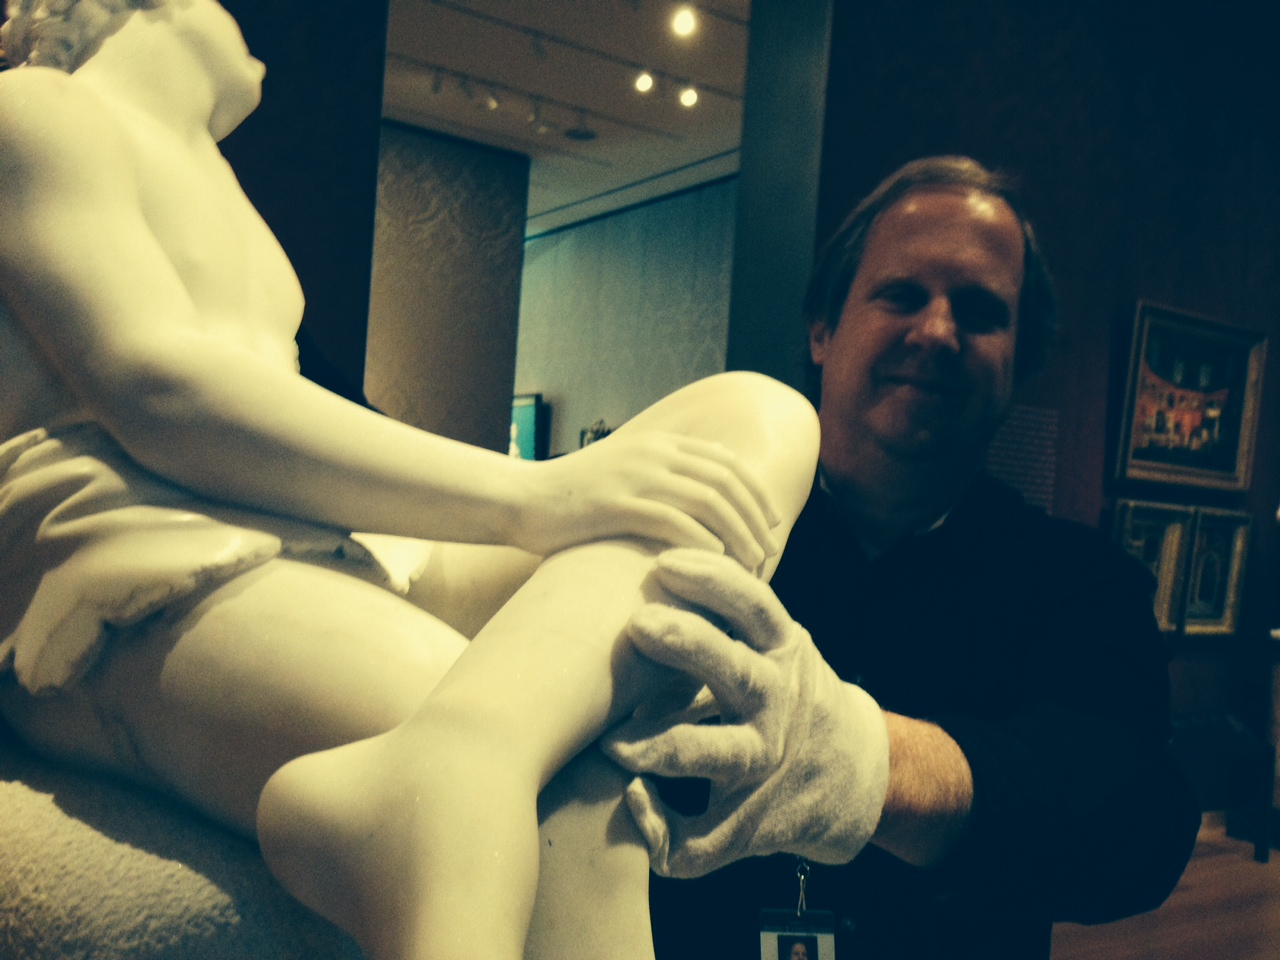 David Kingsbury is a guide at the MFA. Here are his hands wearing white gloves, feeling his favorite sculpture The Sleeping Faun by Harriet Hosmer.